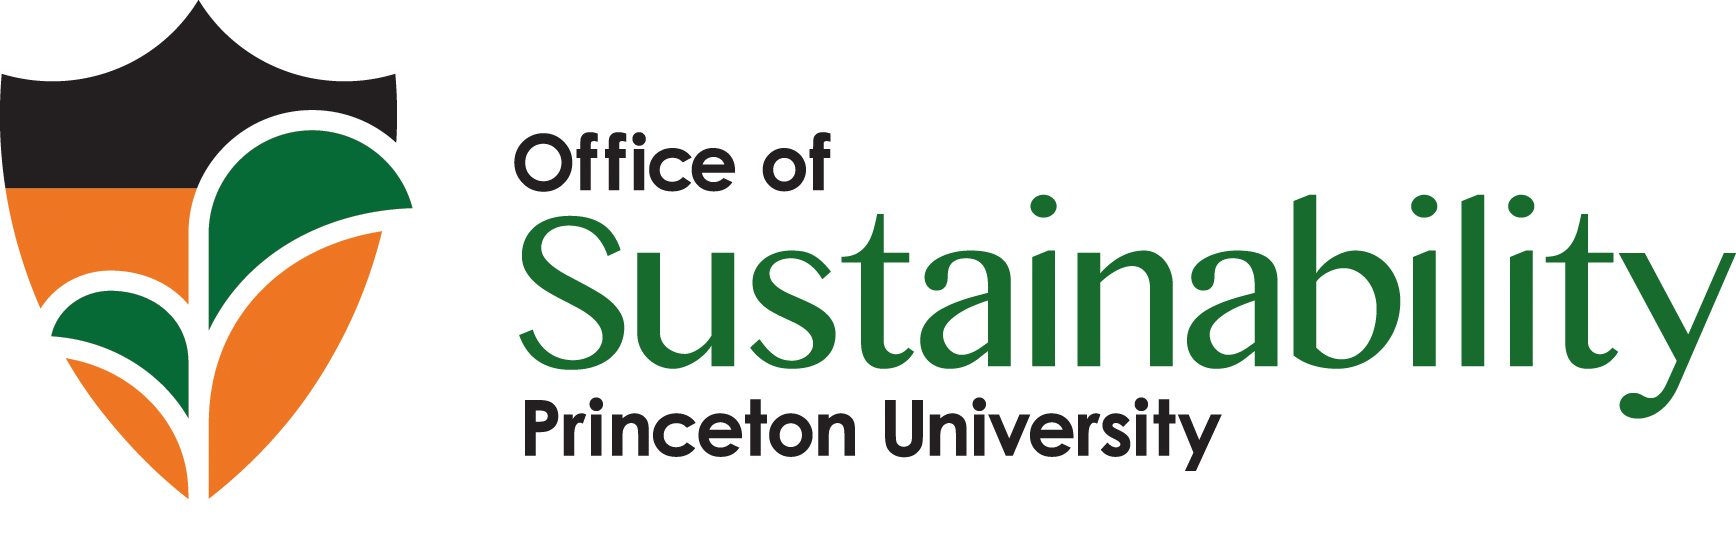 Princeton Office of Sustainability